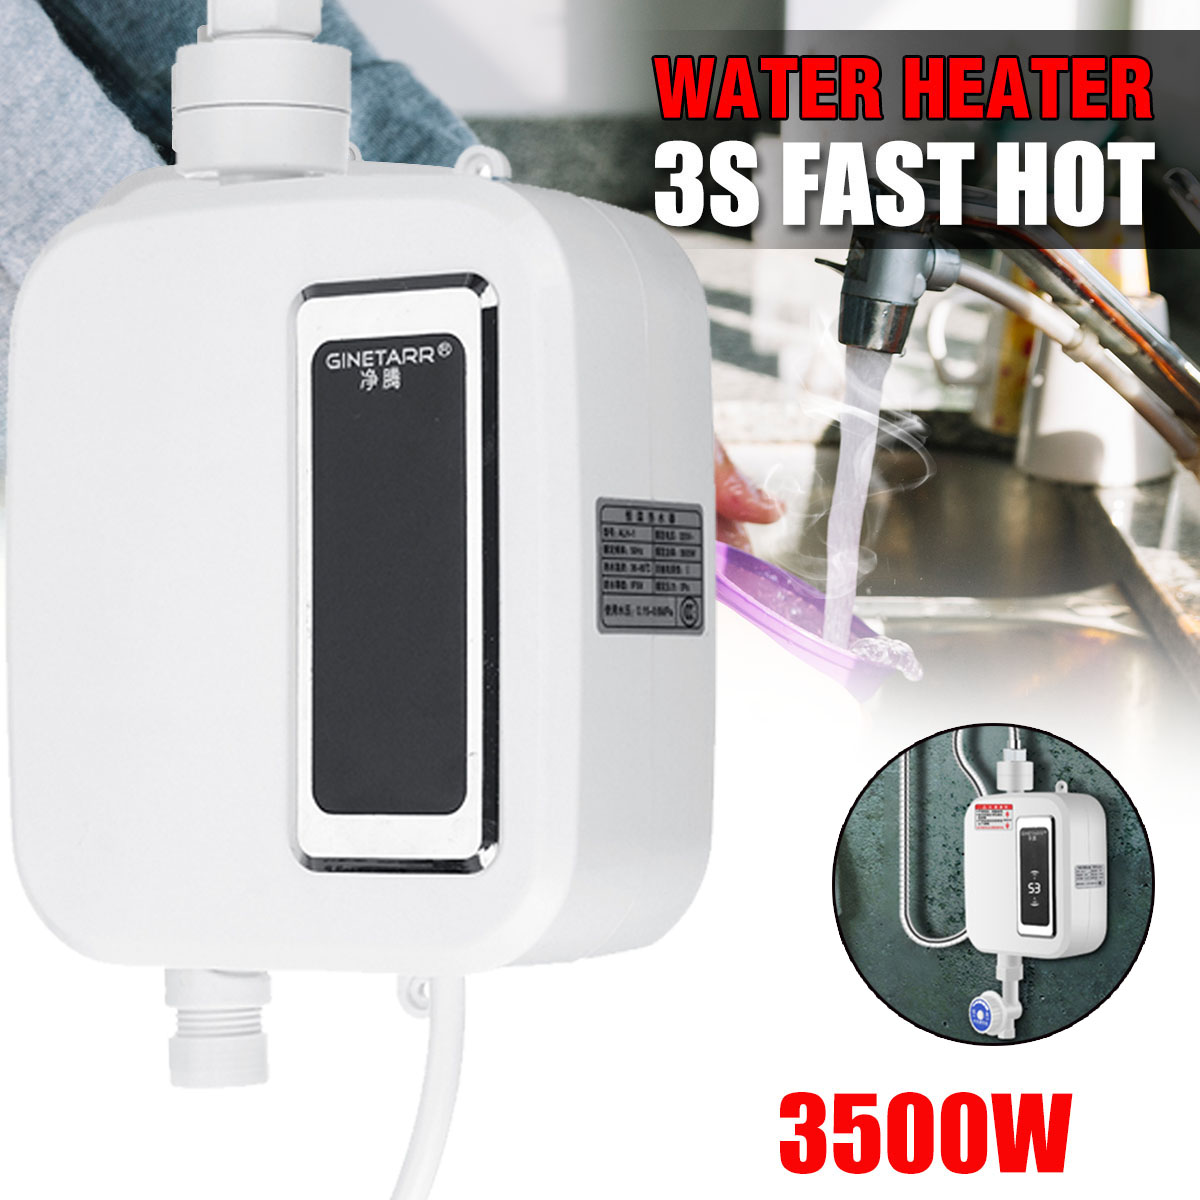 Water Heater 3500W Mini Electric Tankless Instant-Hot Water Heater Intelligent Kitchen Faucet Tap Heating Waterproof Thermostat